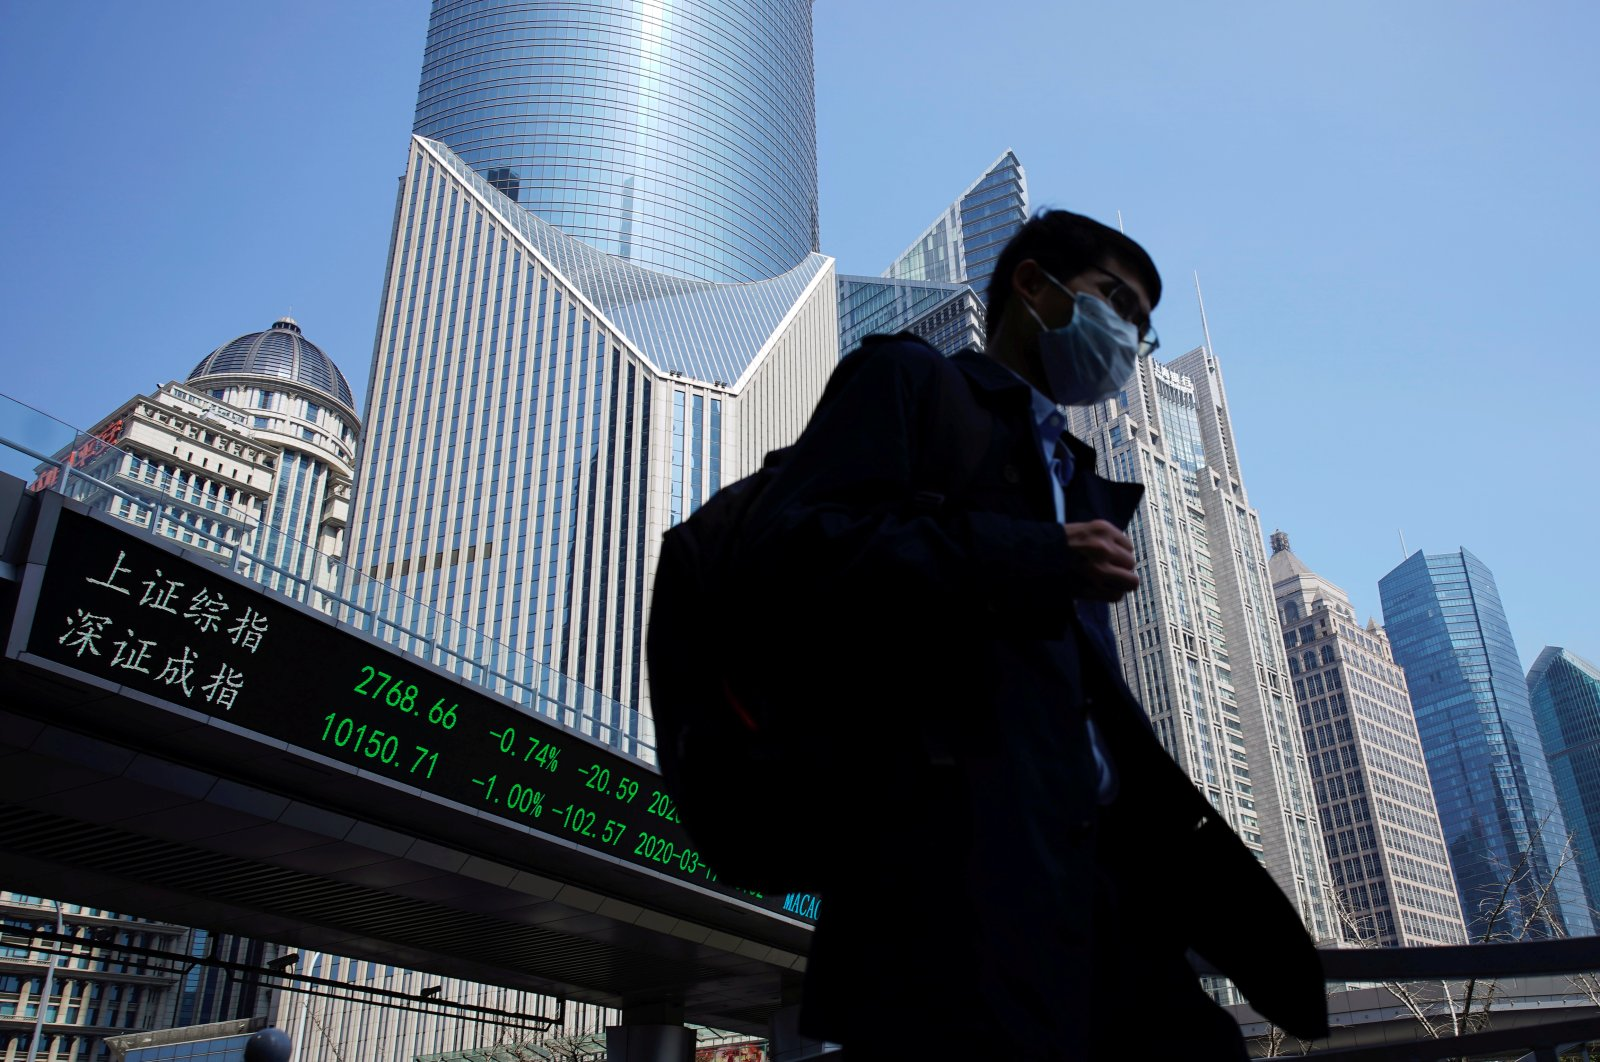 A pedestrian wearing a face mask walks near an overpass with an electronic board showing stock information, following an outbreak of the coronavirus disease (COVID-19), at Lujiazui financial district in Shanghai, China, Tuesday, March 17, 2020. (Reuters Photo)